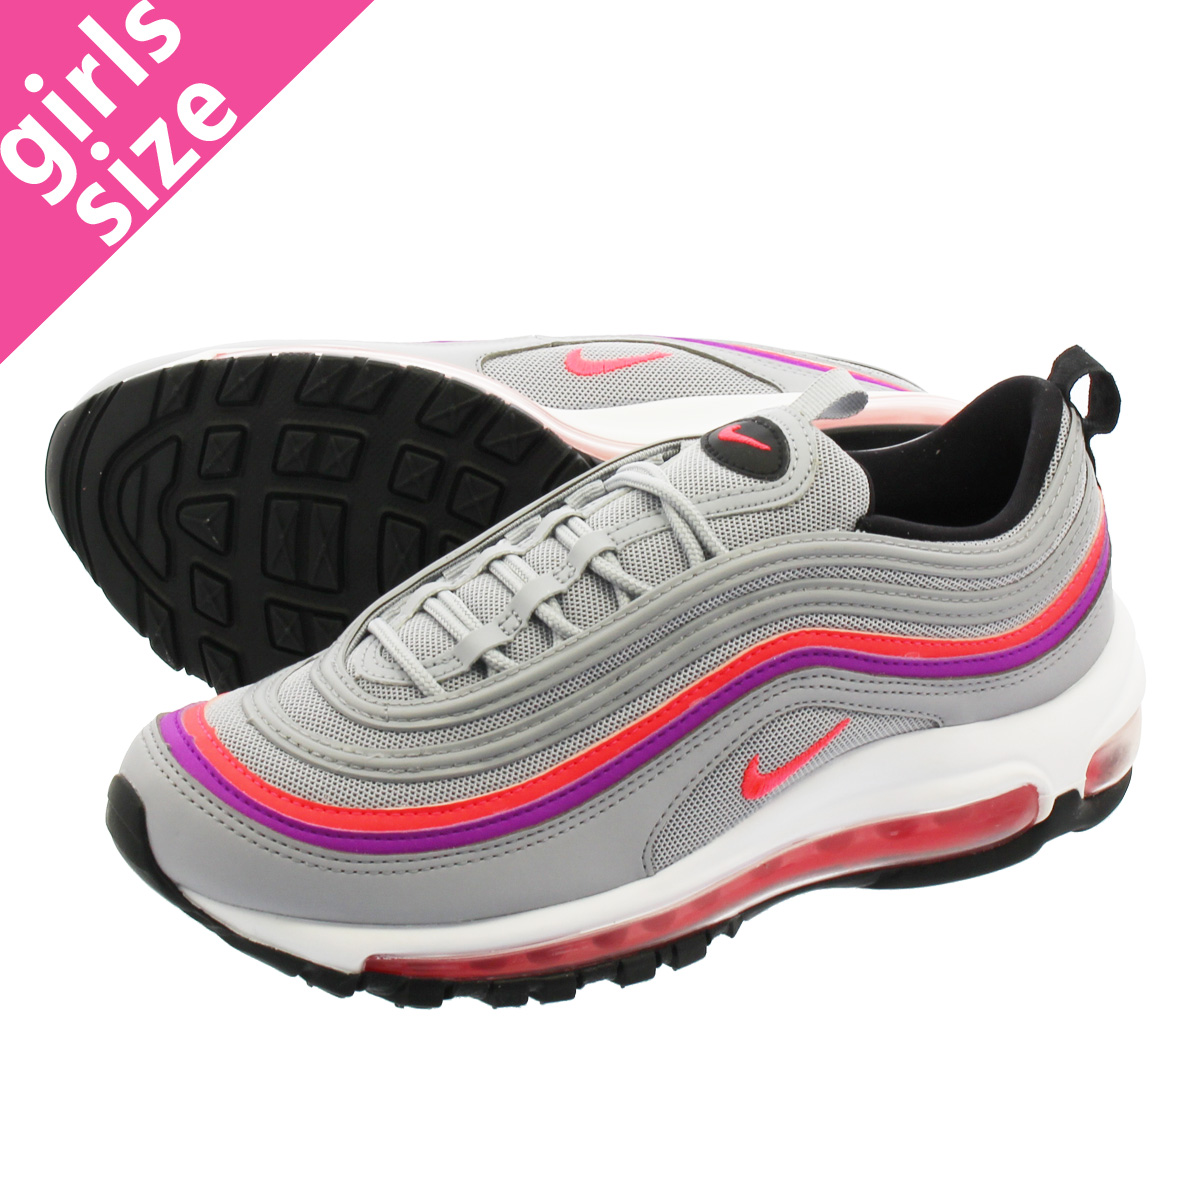 7bc1c03764 LOWTEX PLUS: NIKE WMNS AIR MAX 97 Nike women Air Max 97 WOLF GREY/VIVID  PURPLE/BLACK/SOLAR RED 921,733-009 | Rakuten Global Market